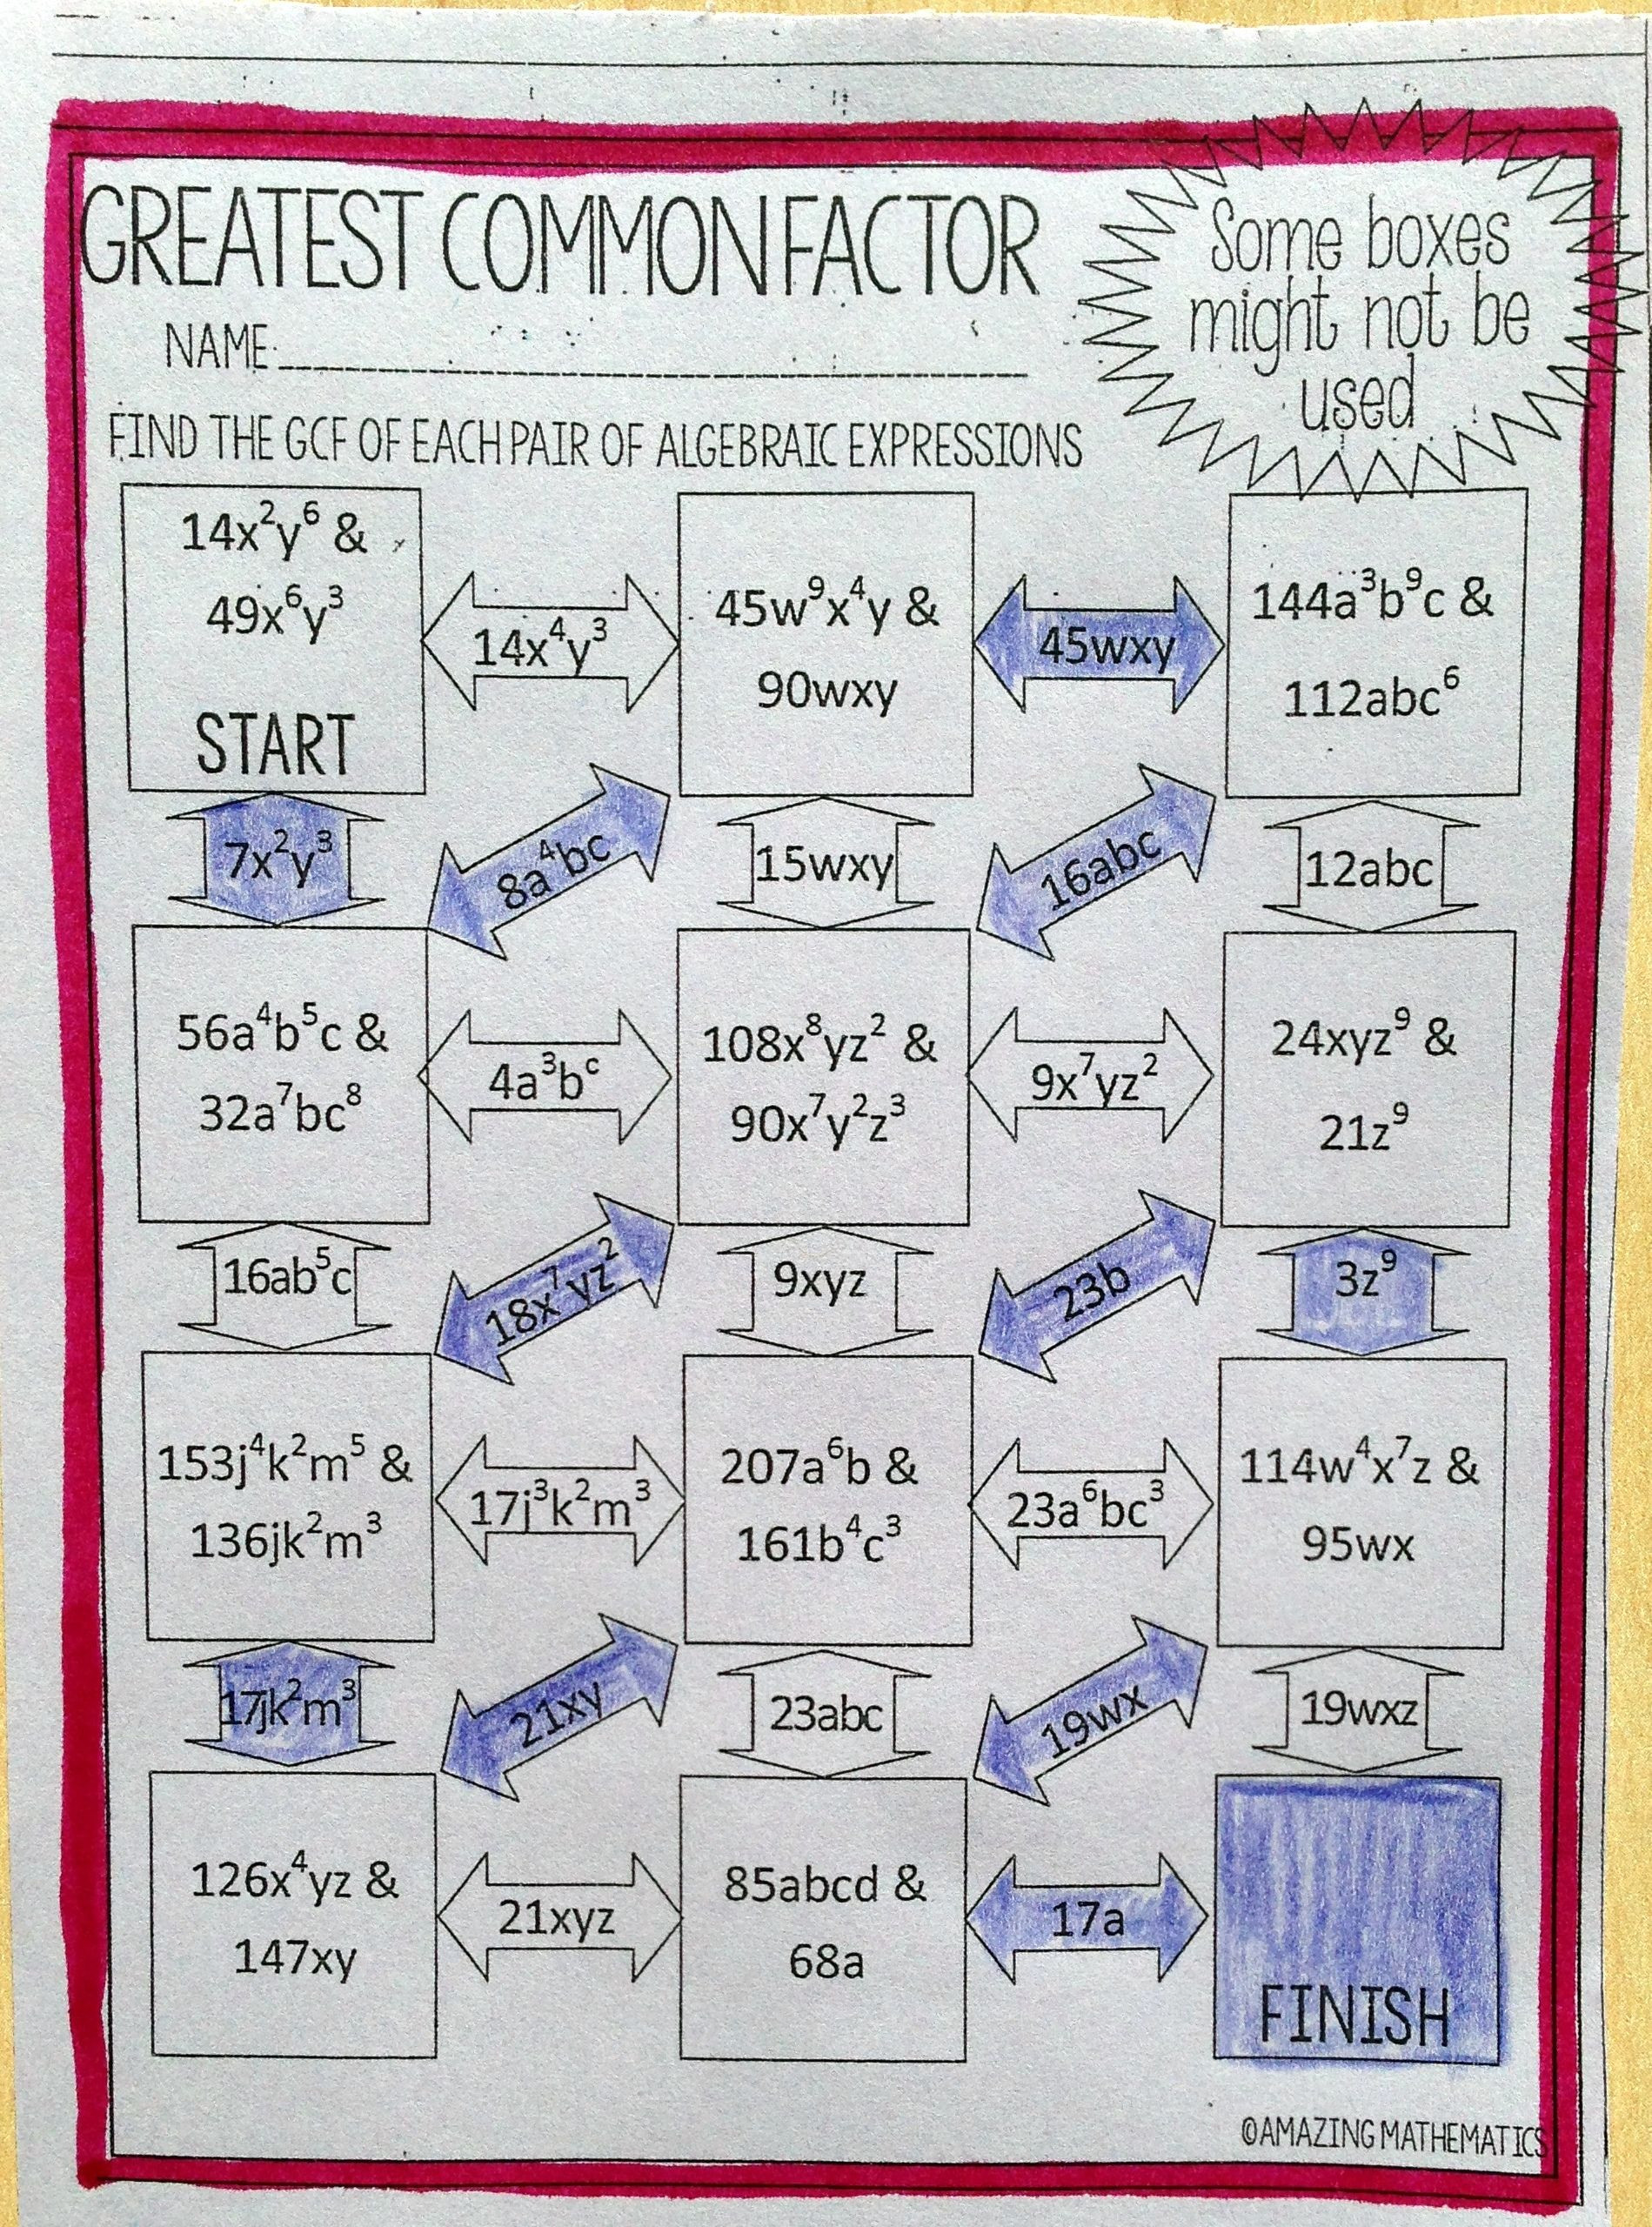 Factoring Greatest Common Factor Worksheet Greatest Mon Factor Of Algebraic Expressions Maze